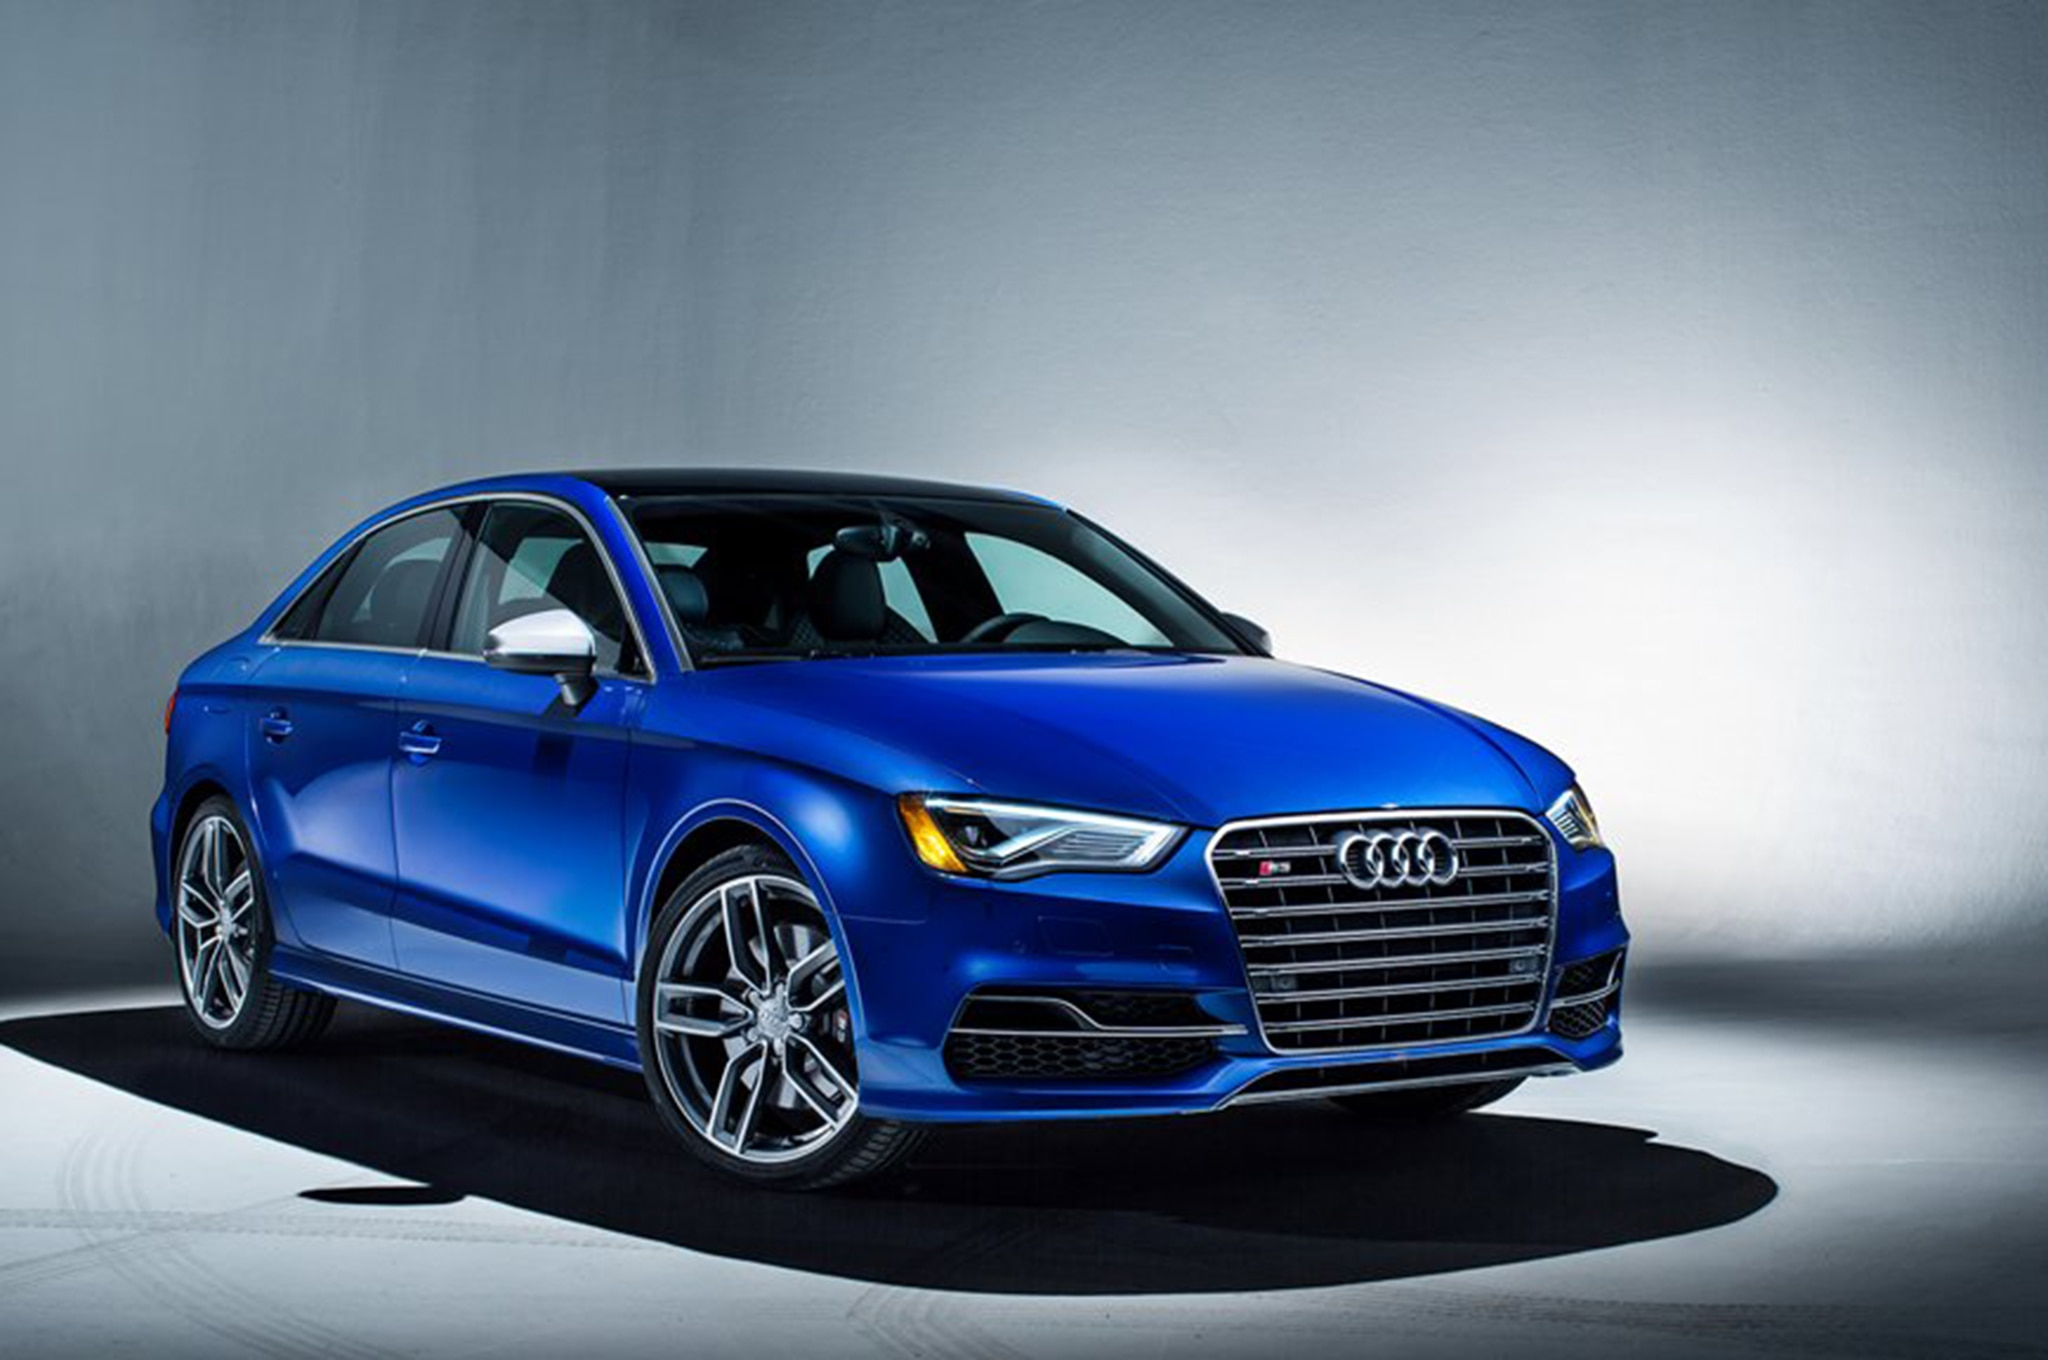 2015 audi s3 exclusive edition available in five new colors. Black Bedroom Furniture Sets. Home Design Ideas